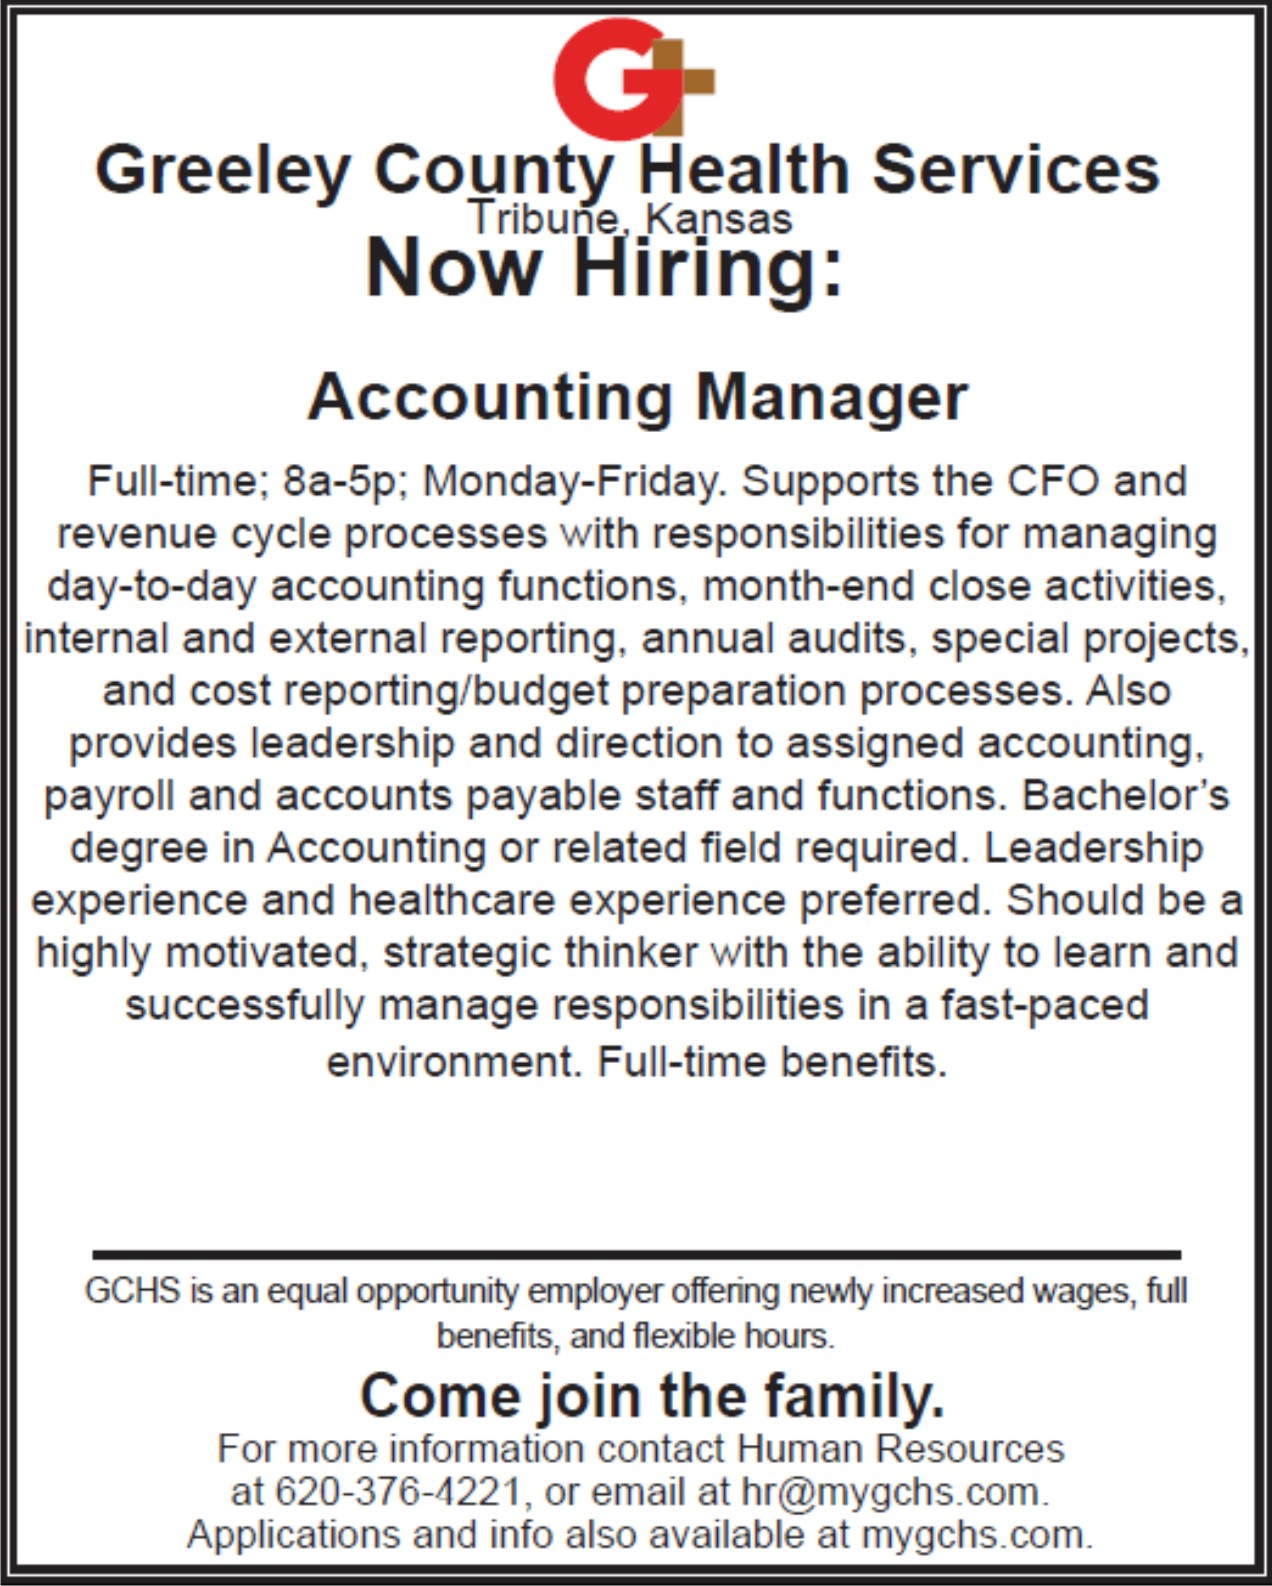 AD 2020-06 Help Wanted - Greeley County Health Services - Accounting Manager